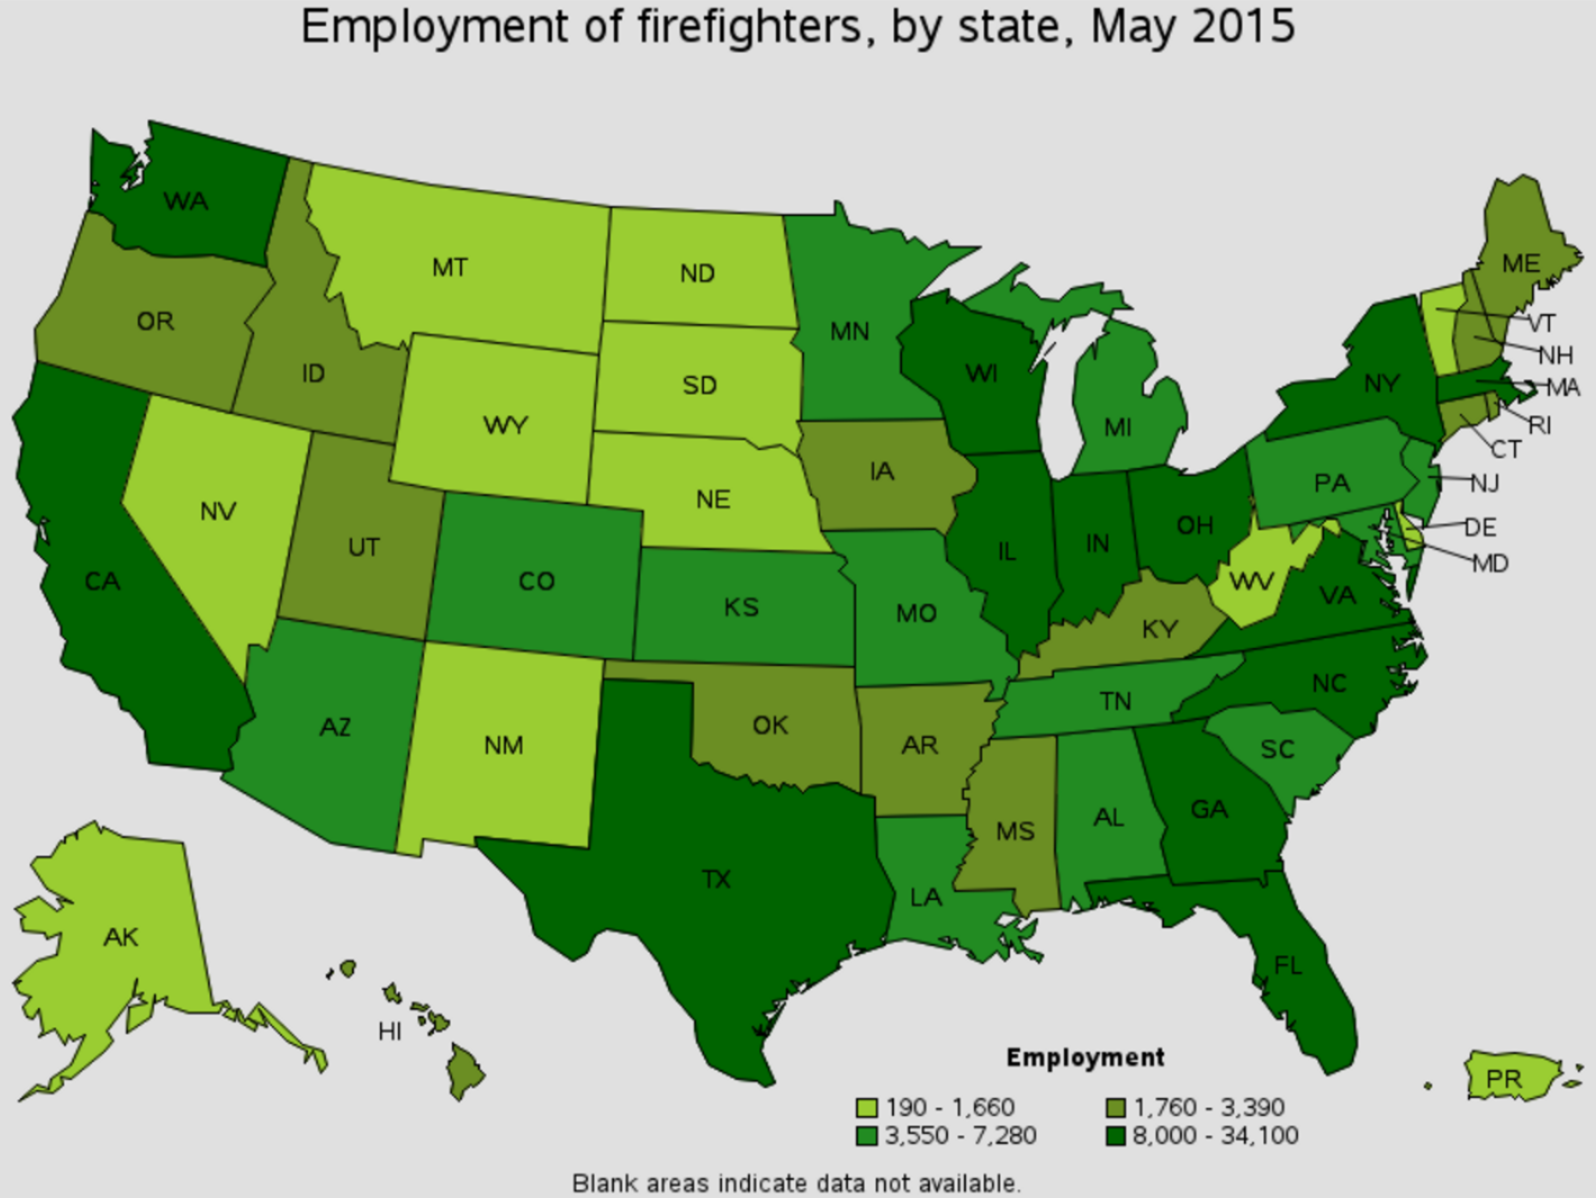 firefighter job outlook by state Williamsburg Iowa